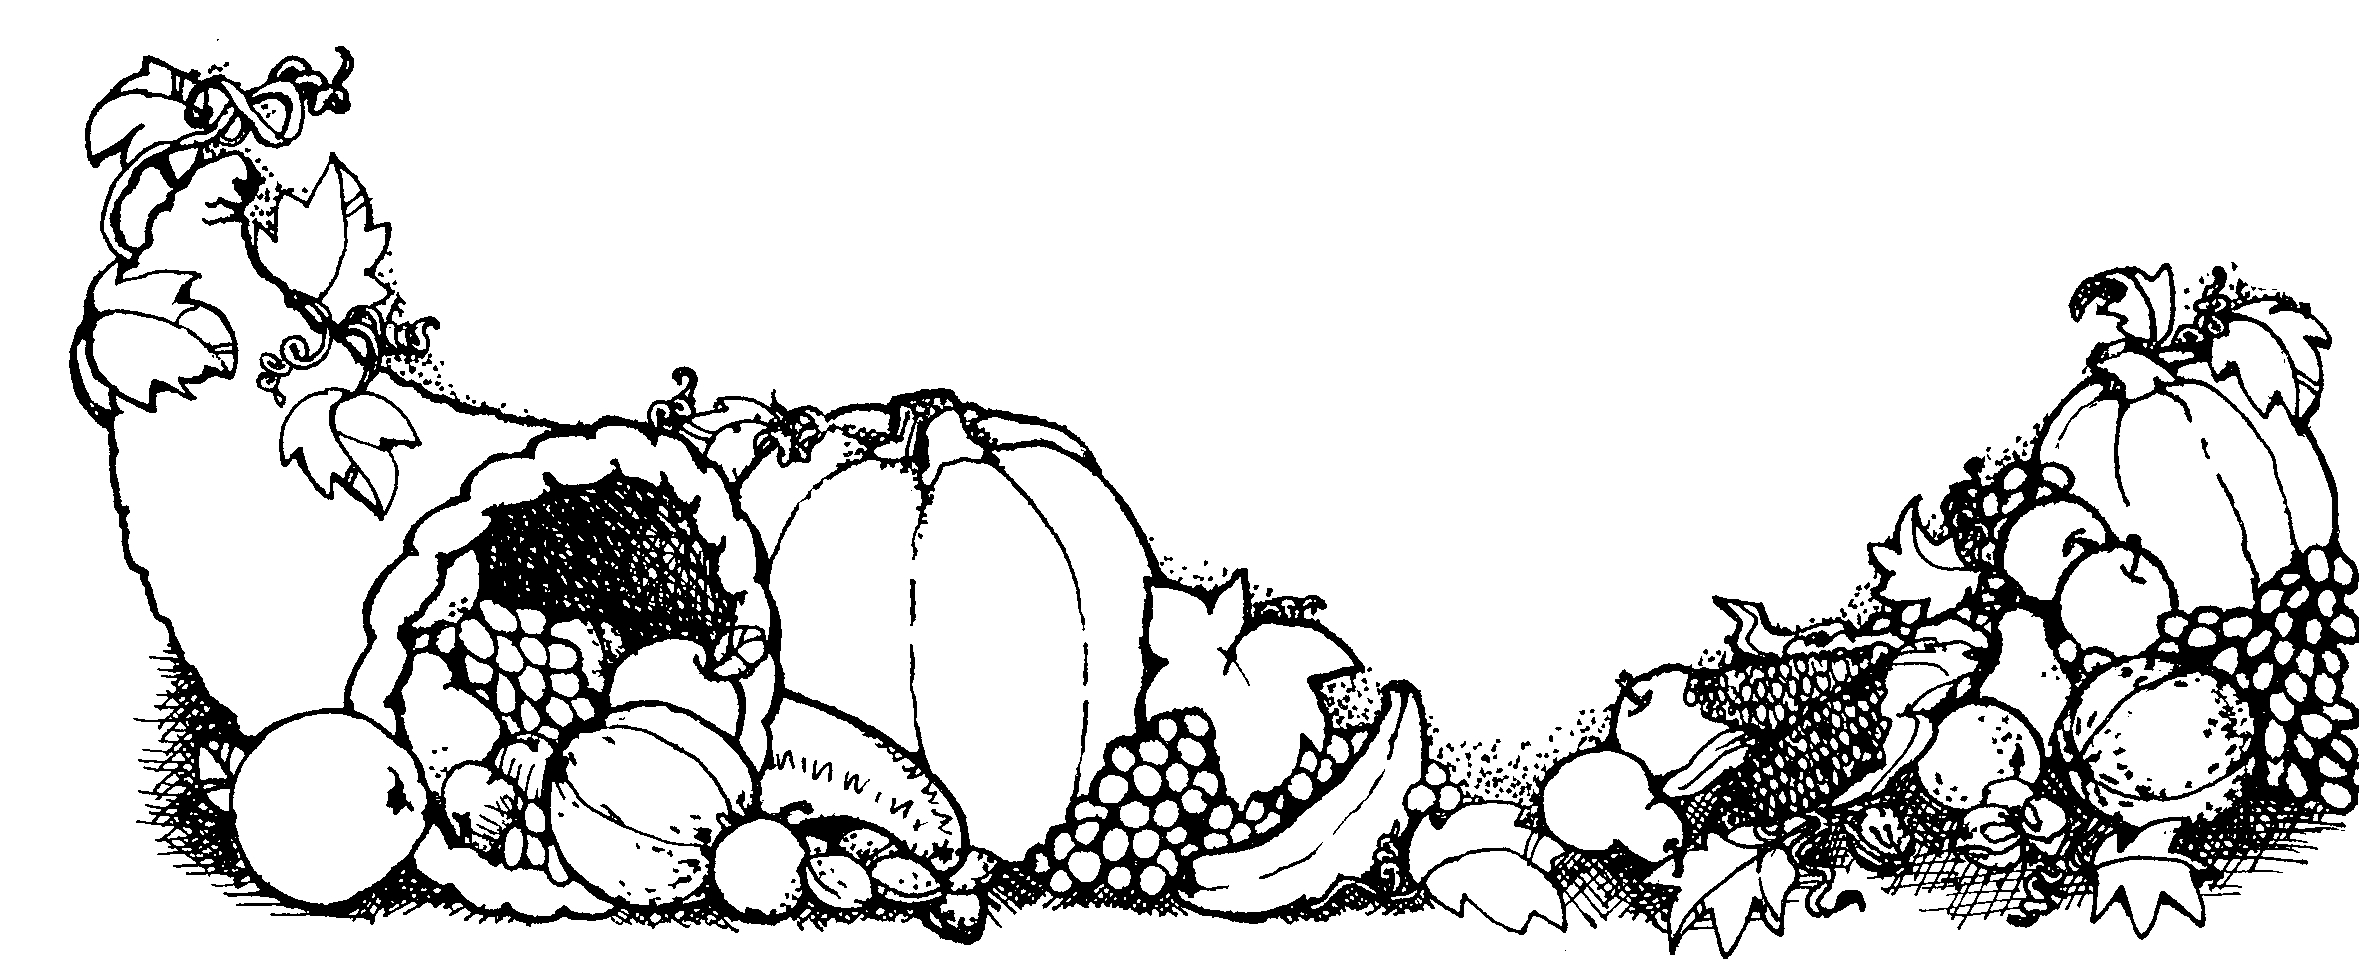 Thanksgiving dinner table black and white clipart.